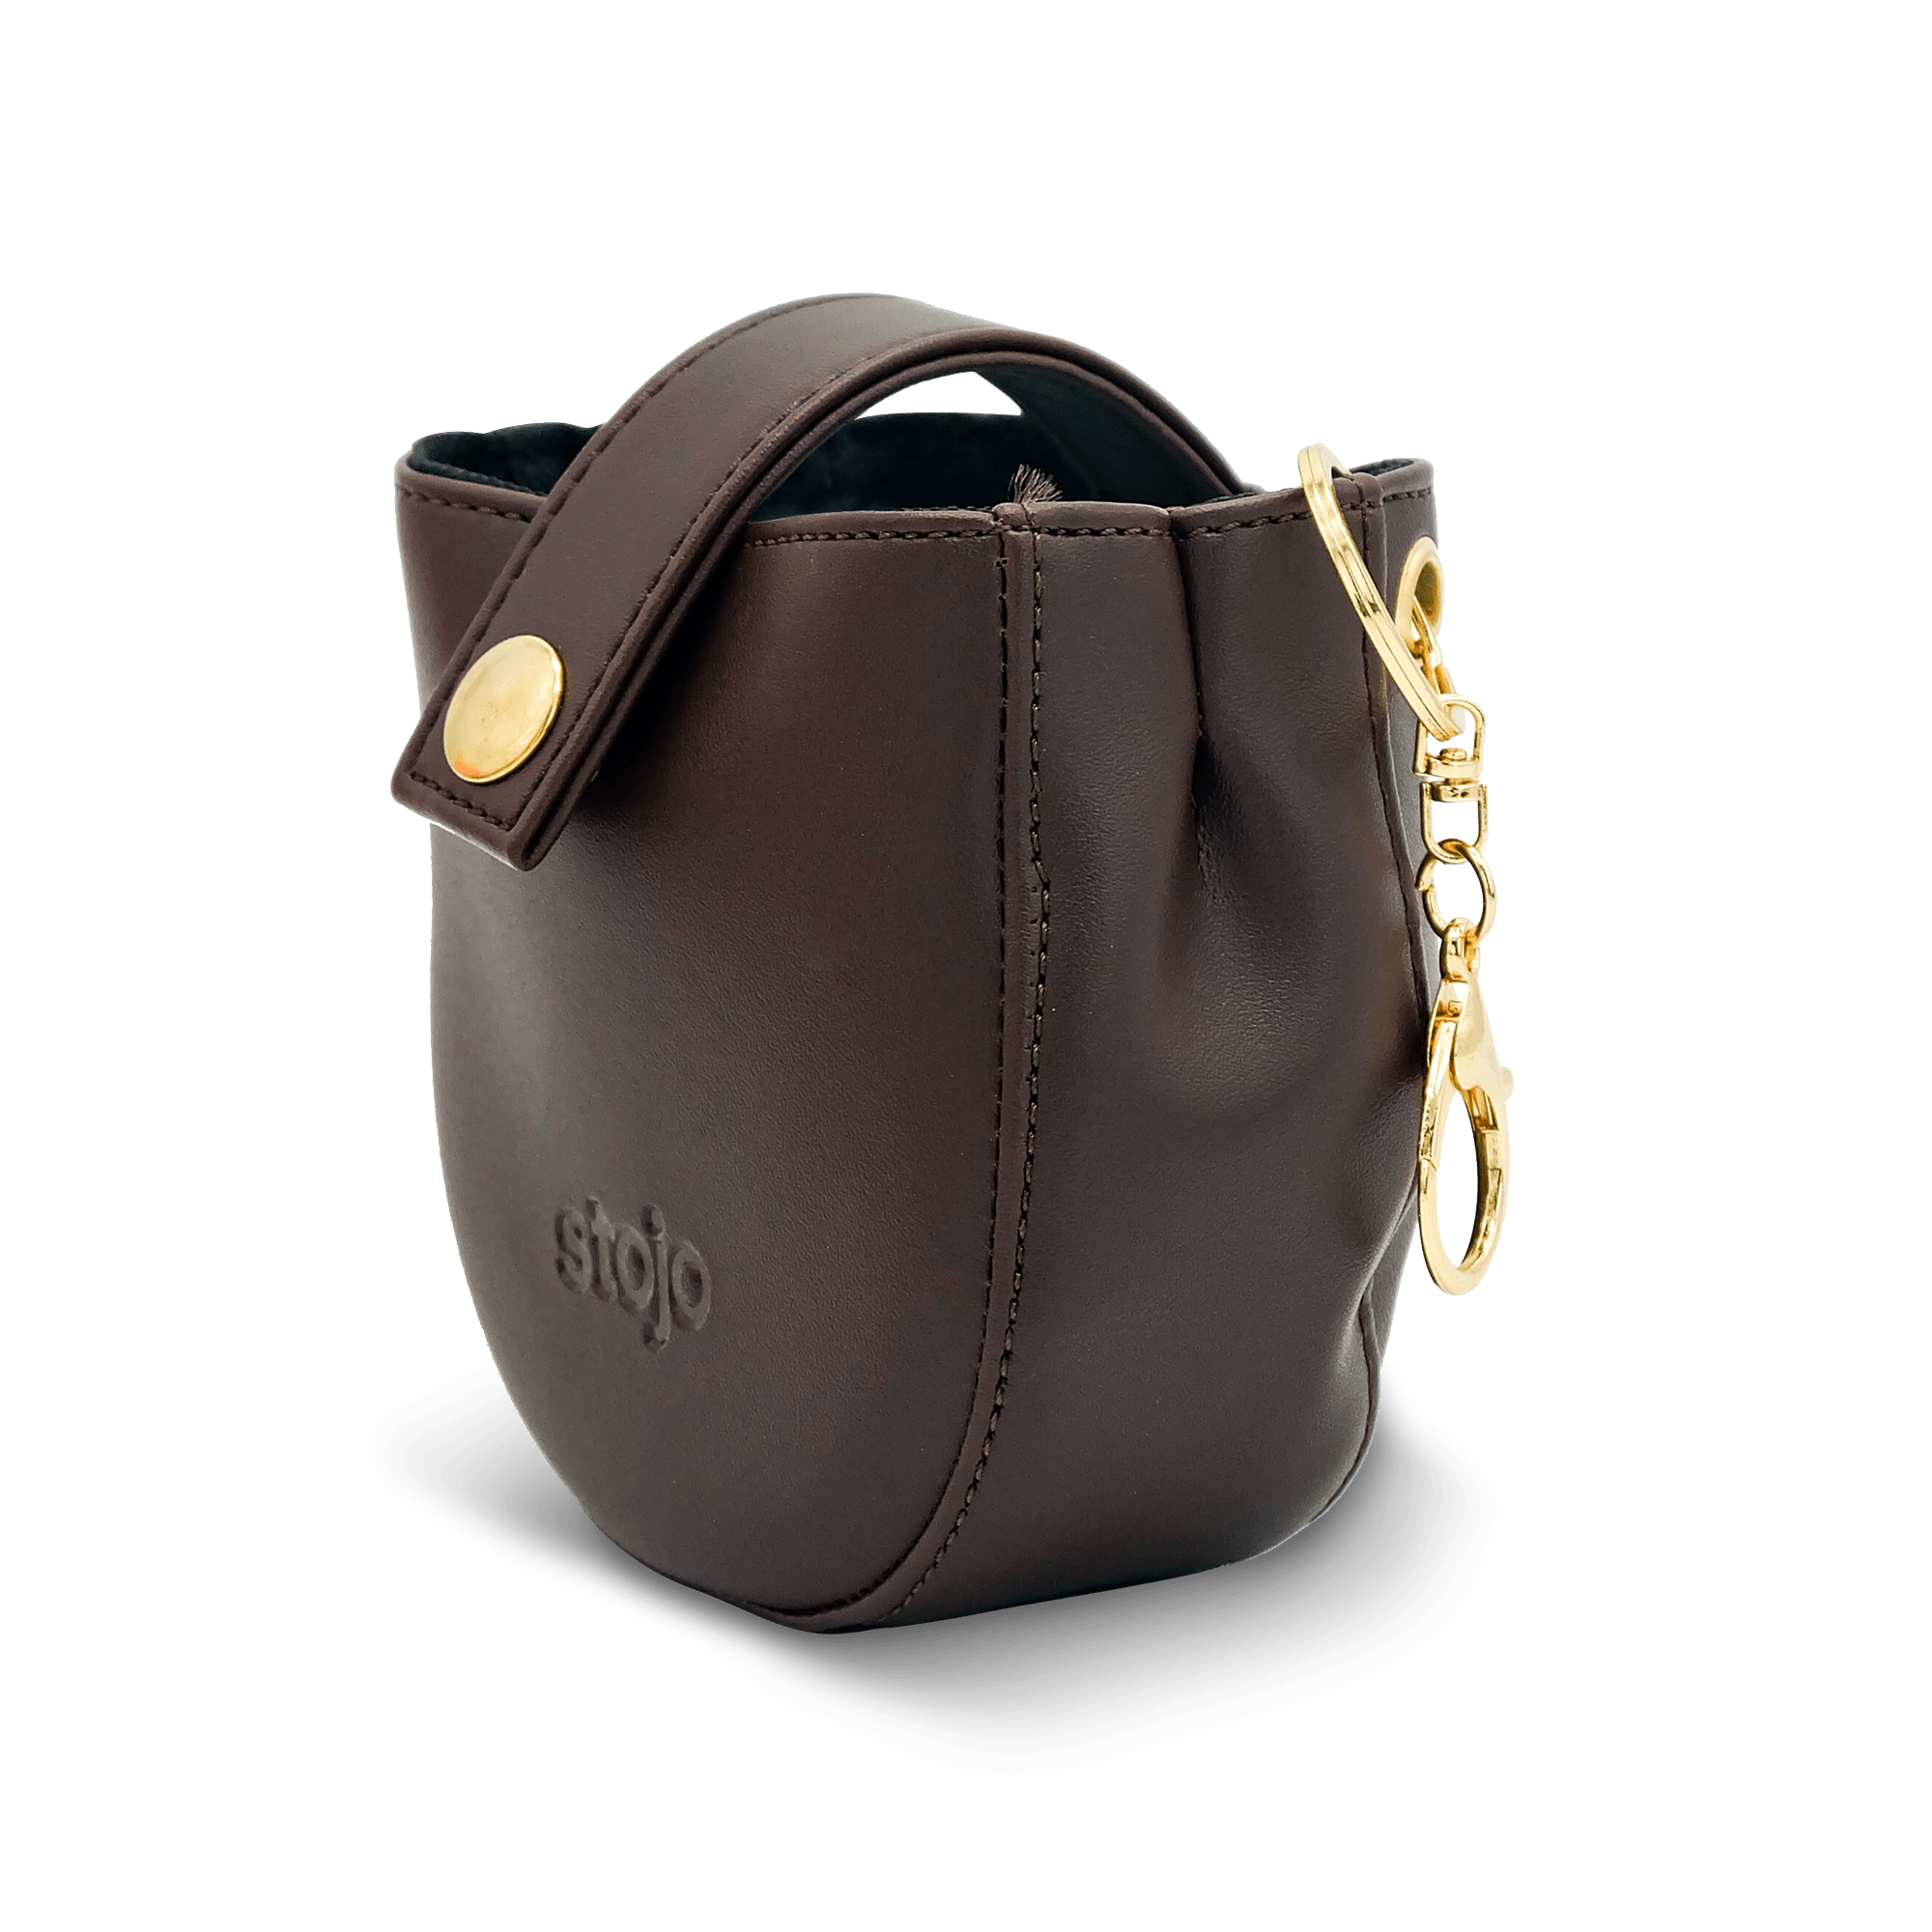 Stojo Compact Pouch - Leather Brown